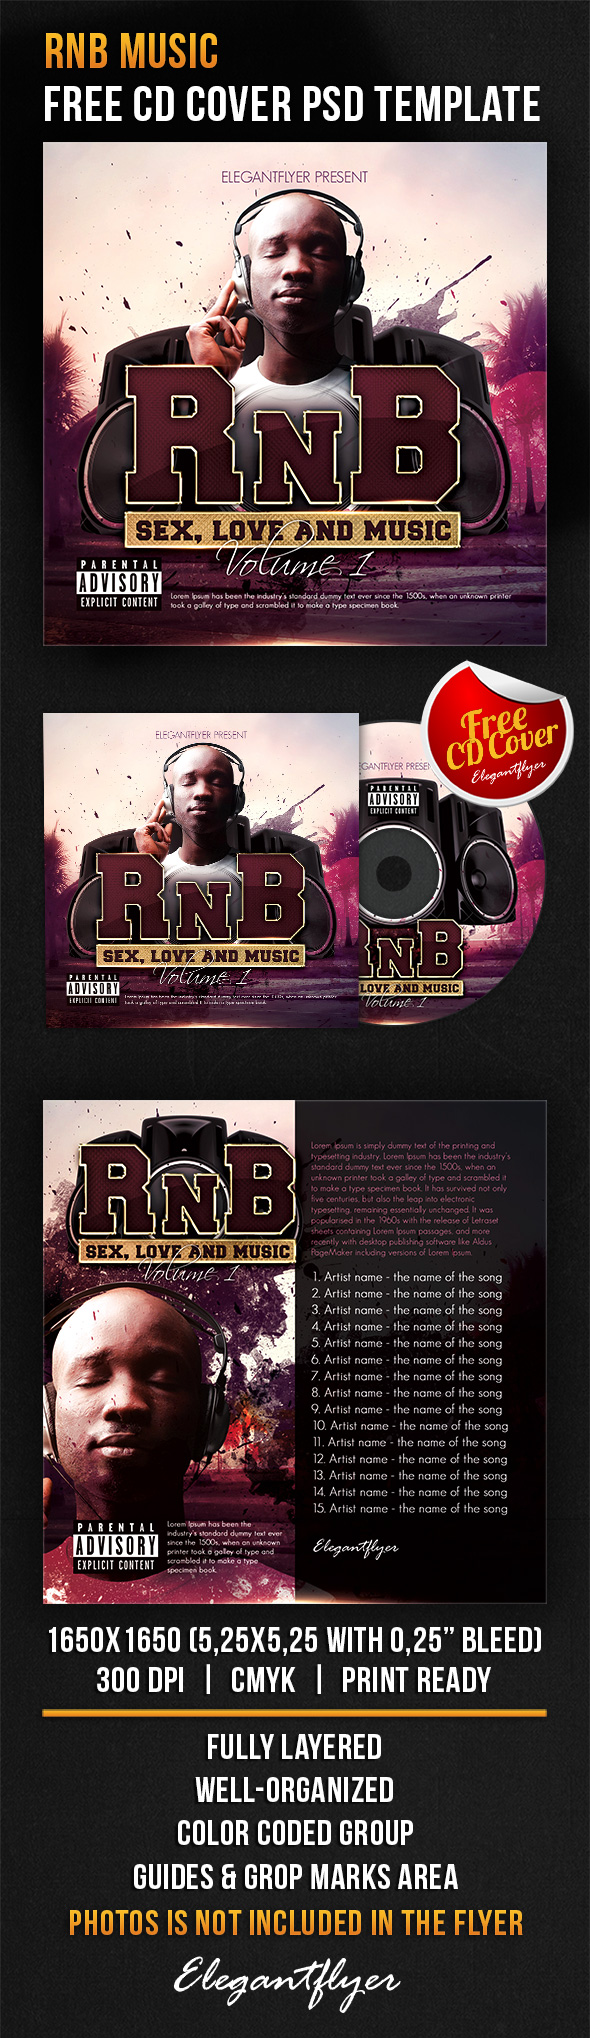 rnb music free cd cover psd template free cd dvd cover